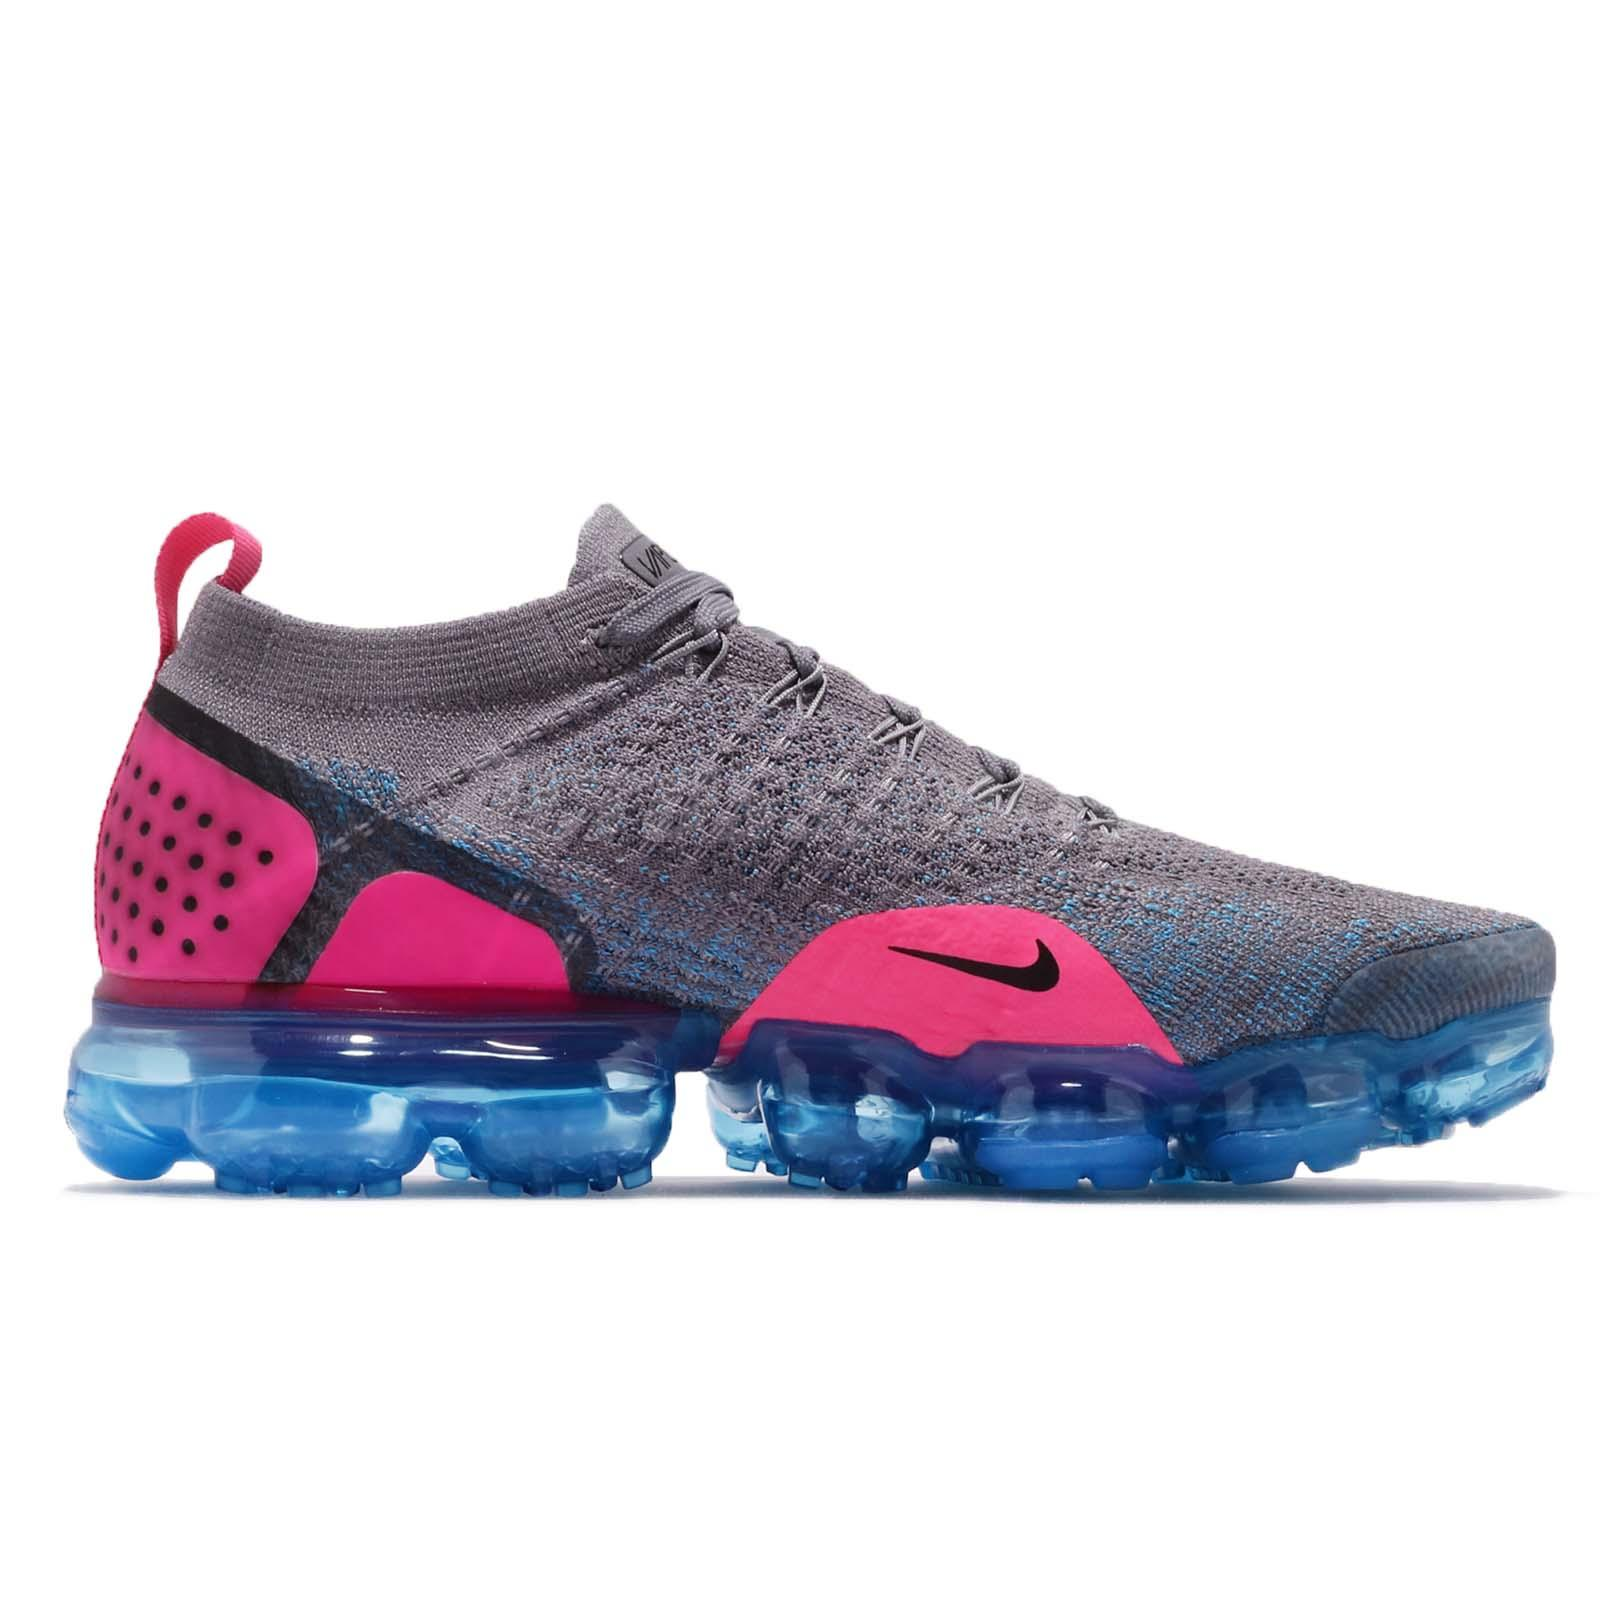 e565436c51d9 Nike Air Vapormax Flyknit 2 II Gunsmoke Pink Blue Men Running Shoes ...